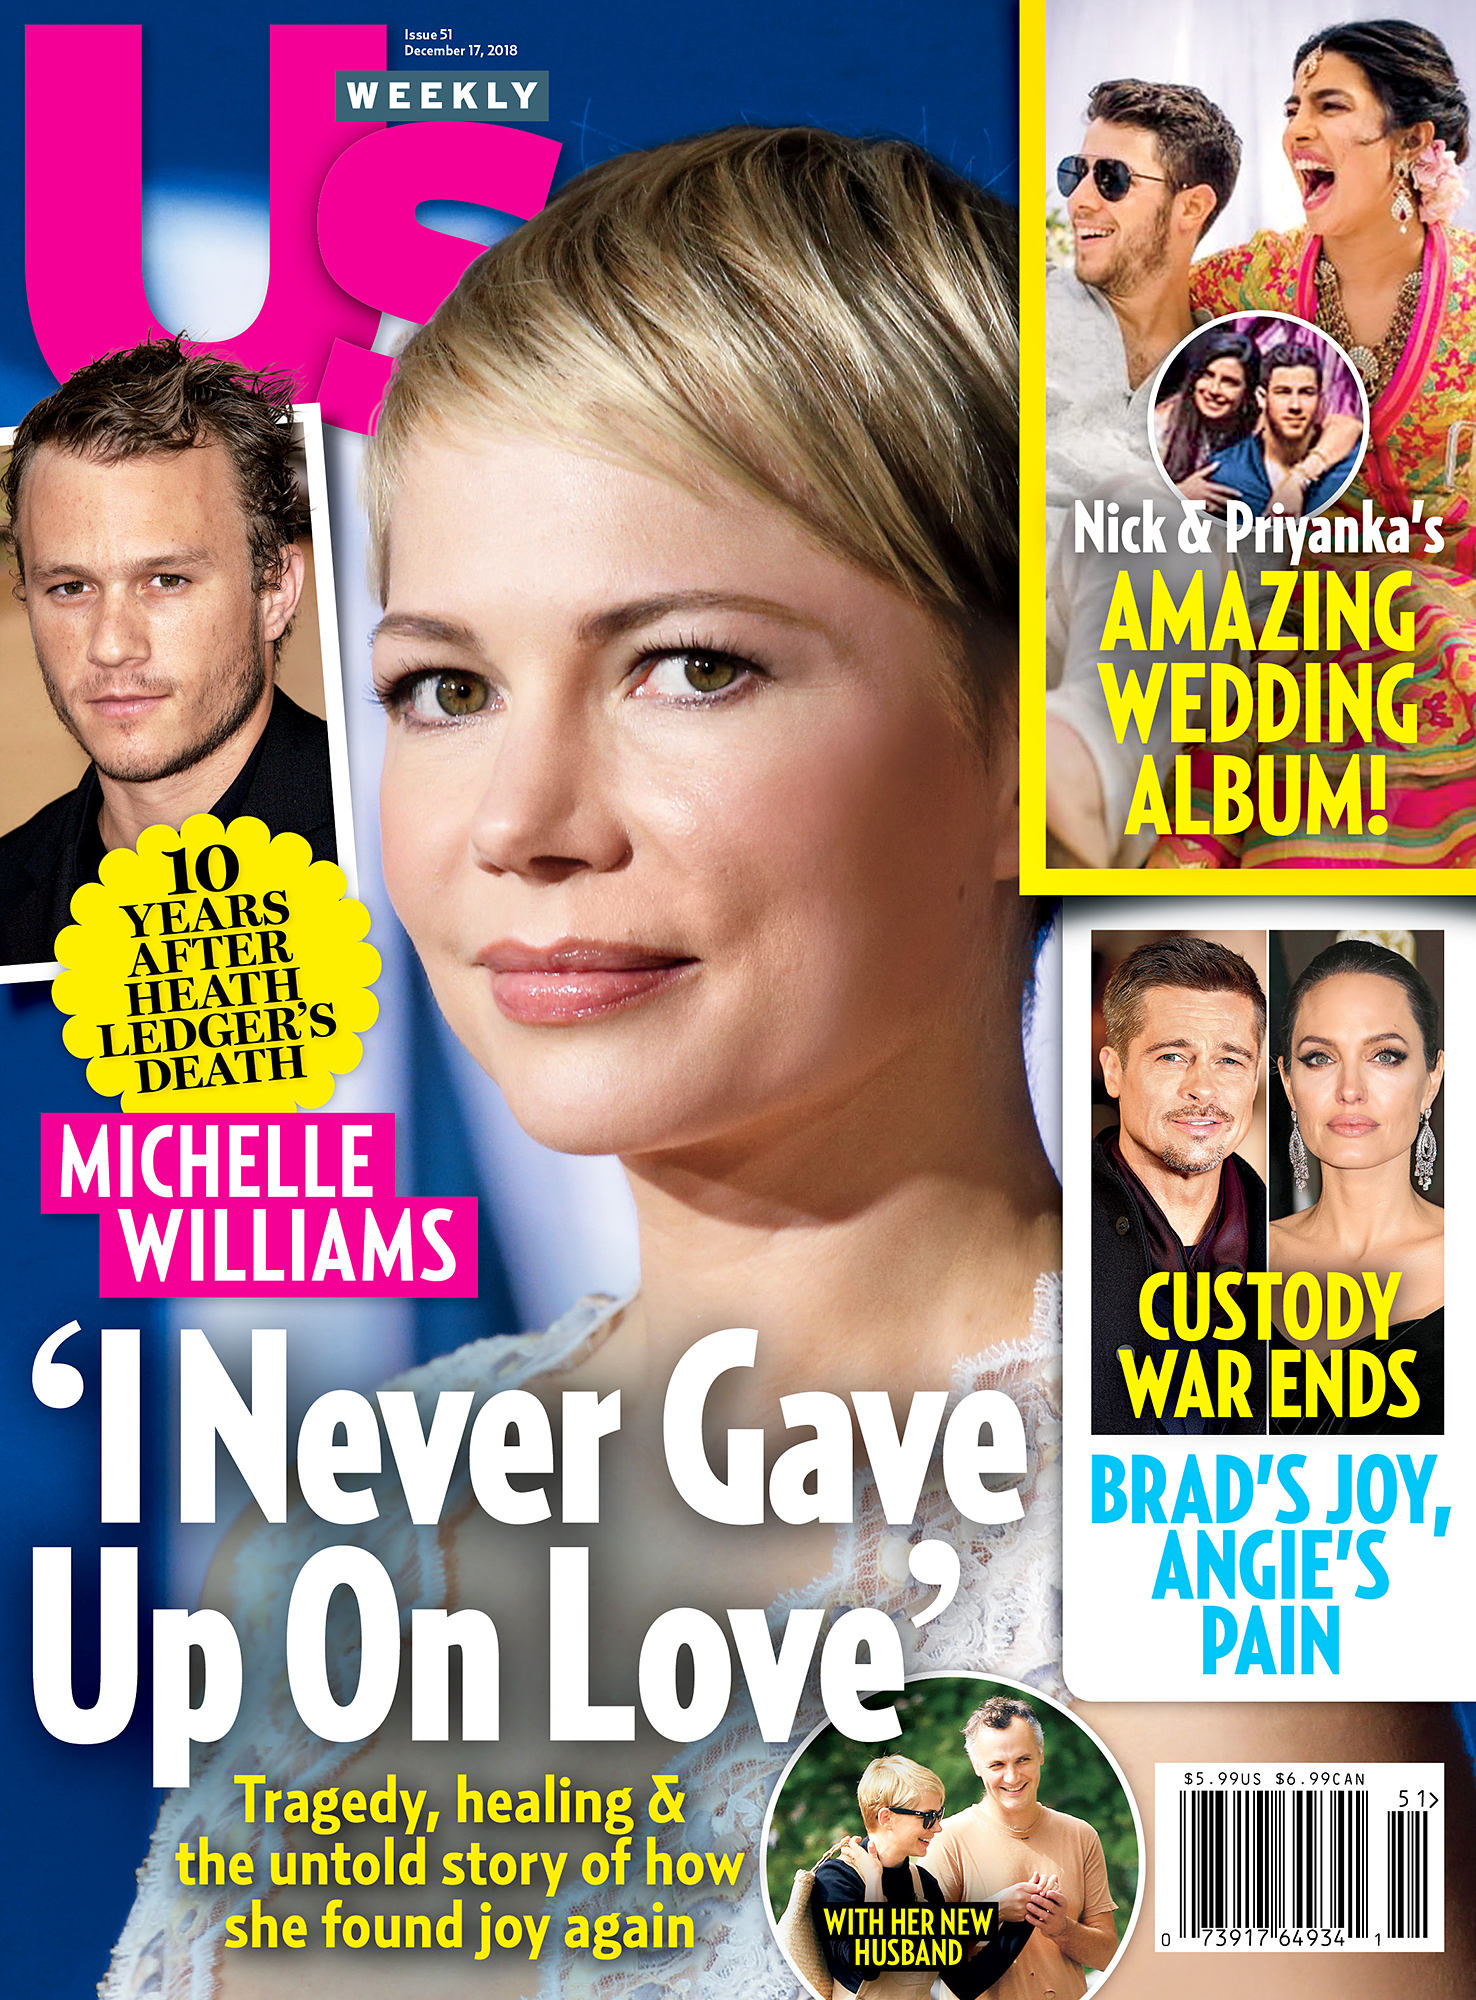 Us Weekly Cover Michelle Williams - UW5118 Us Weekly Cover Michelle Williams